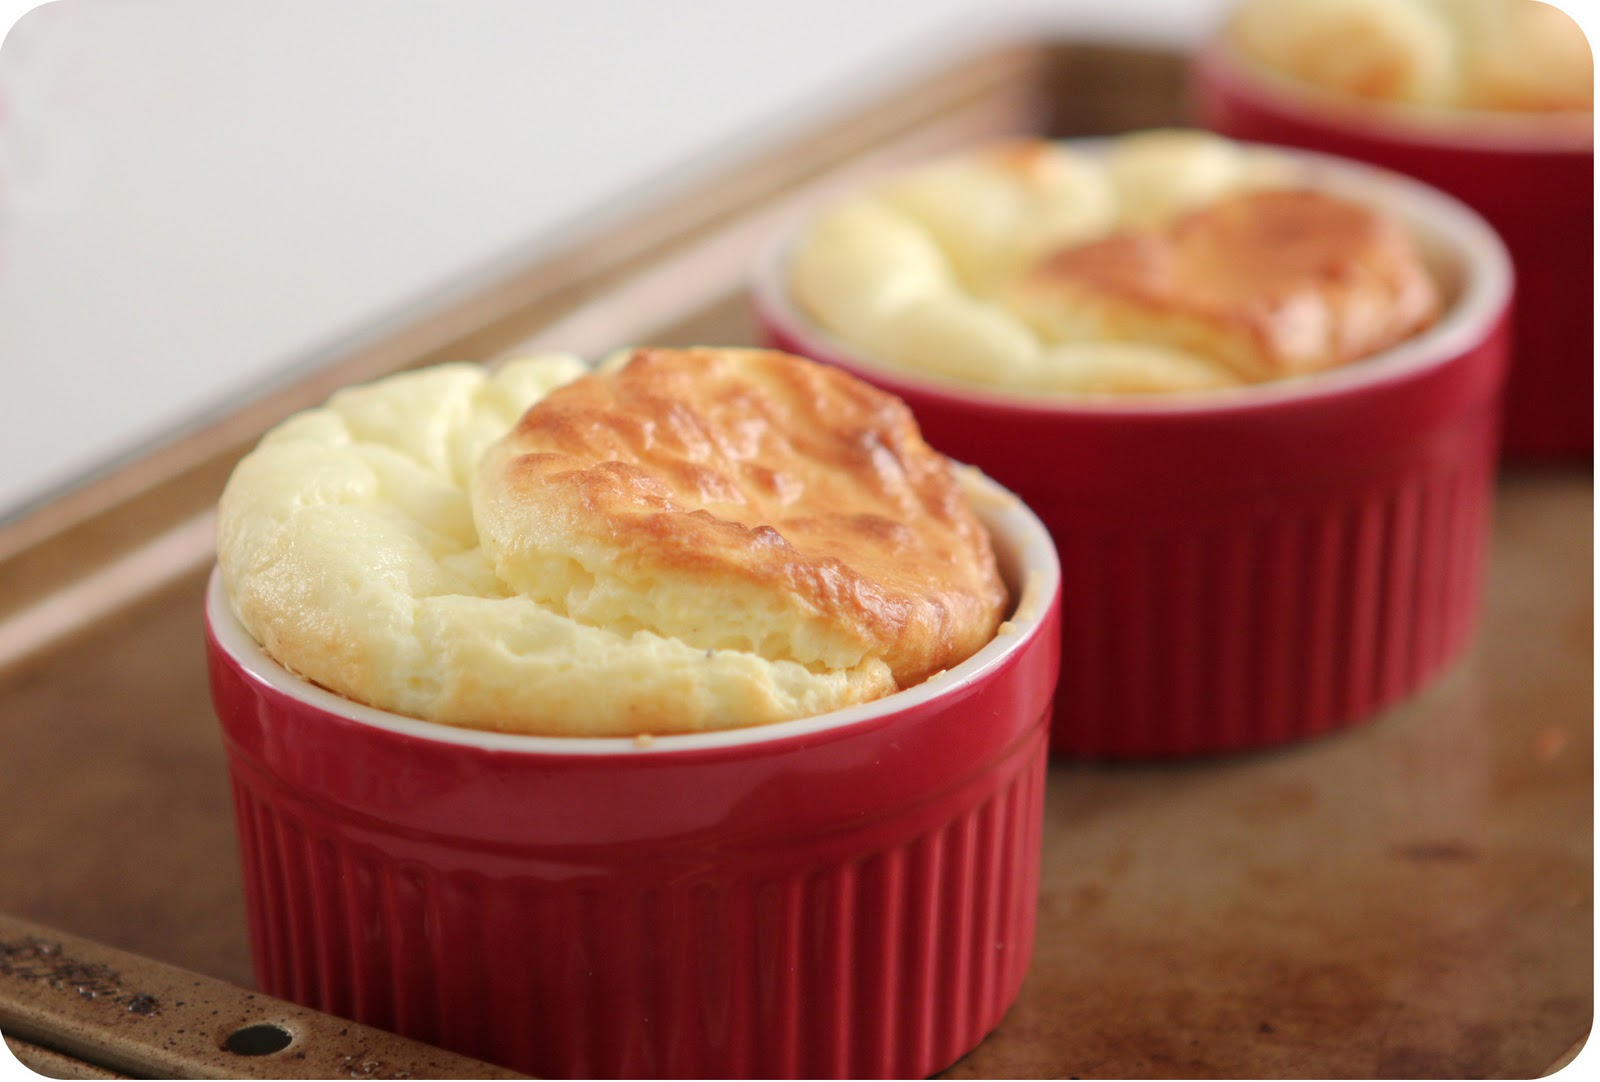 national cheese souffle day five food finds about souffle a souffle is ...